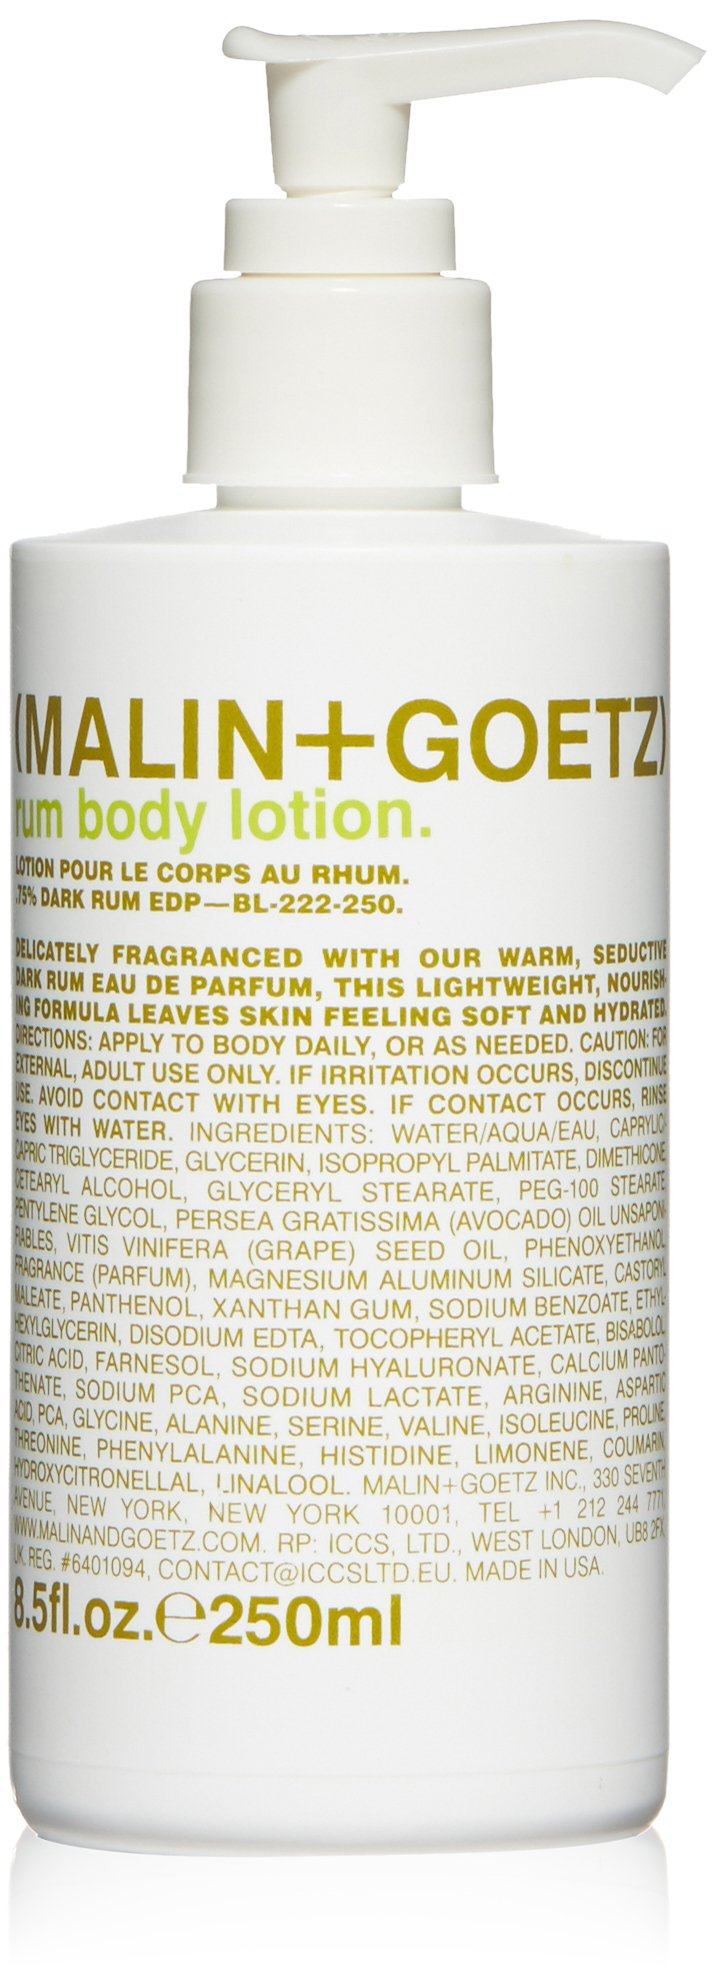 Malin + Goetz Rum Body Lotion, 8.5 Fl Oz